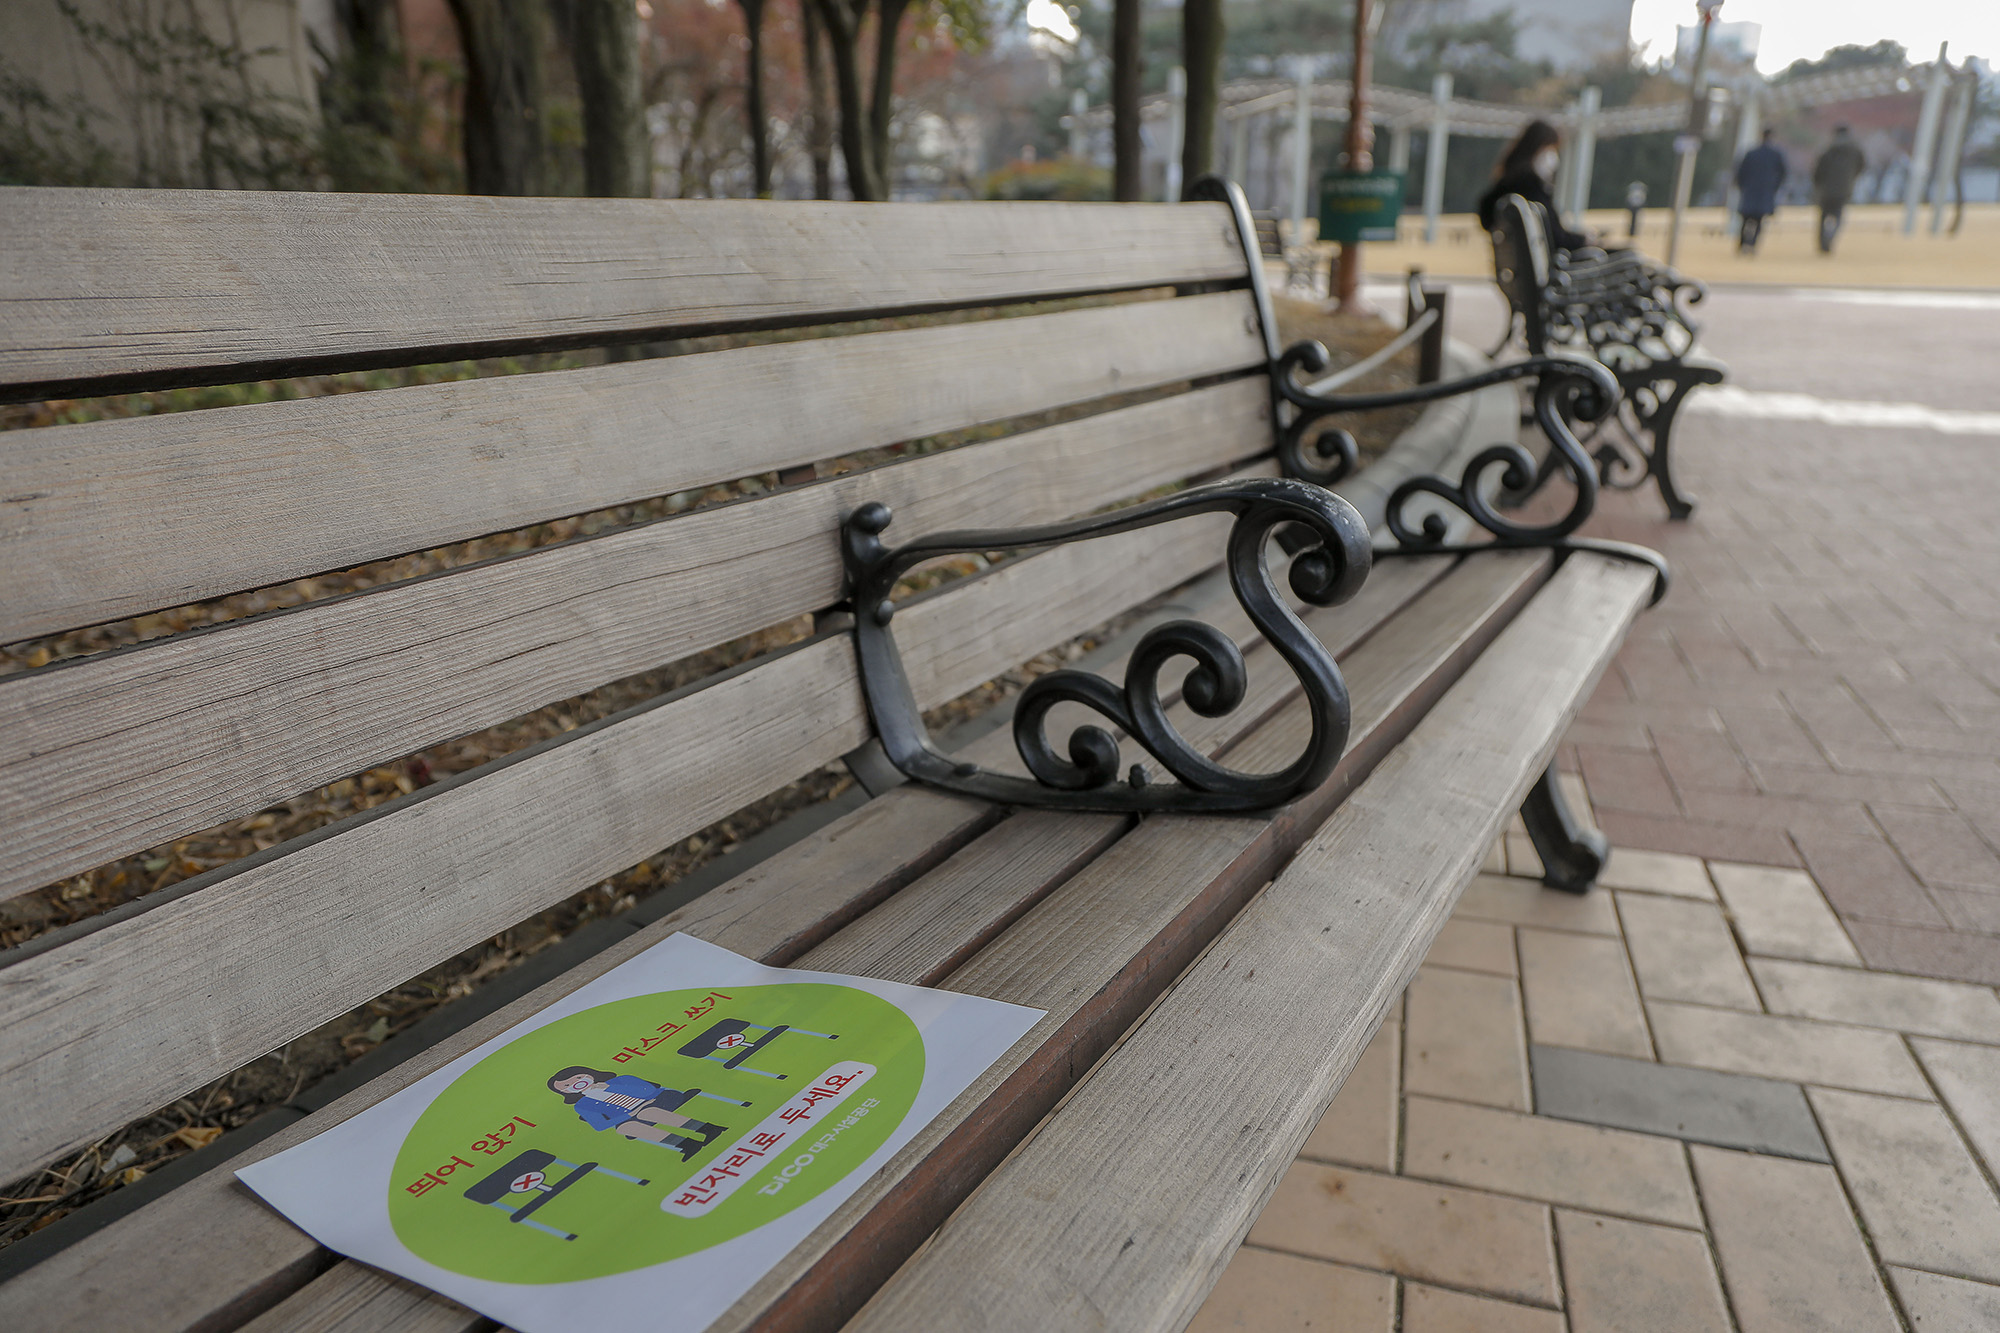 A view of a social distancing sign in the Dongsungro district in Daegu, South Korea on December 22, 2020.